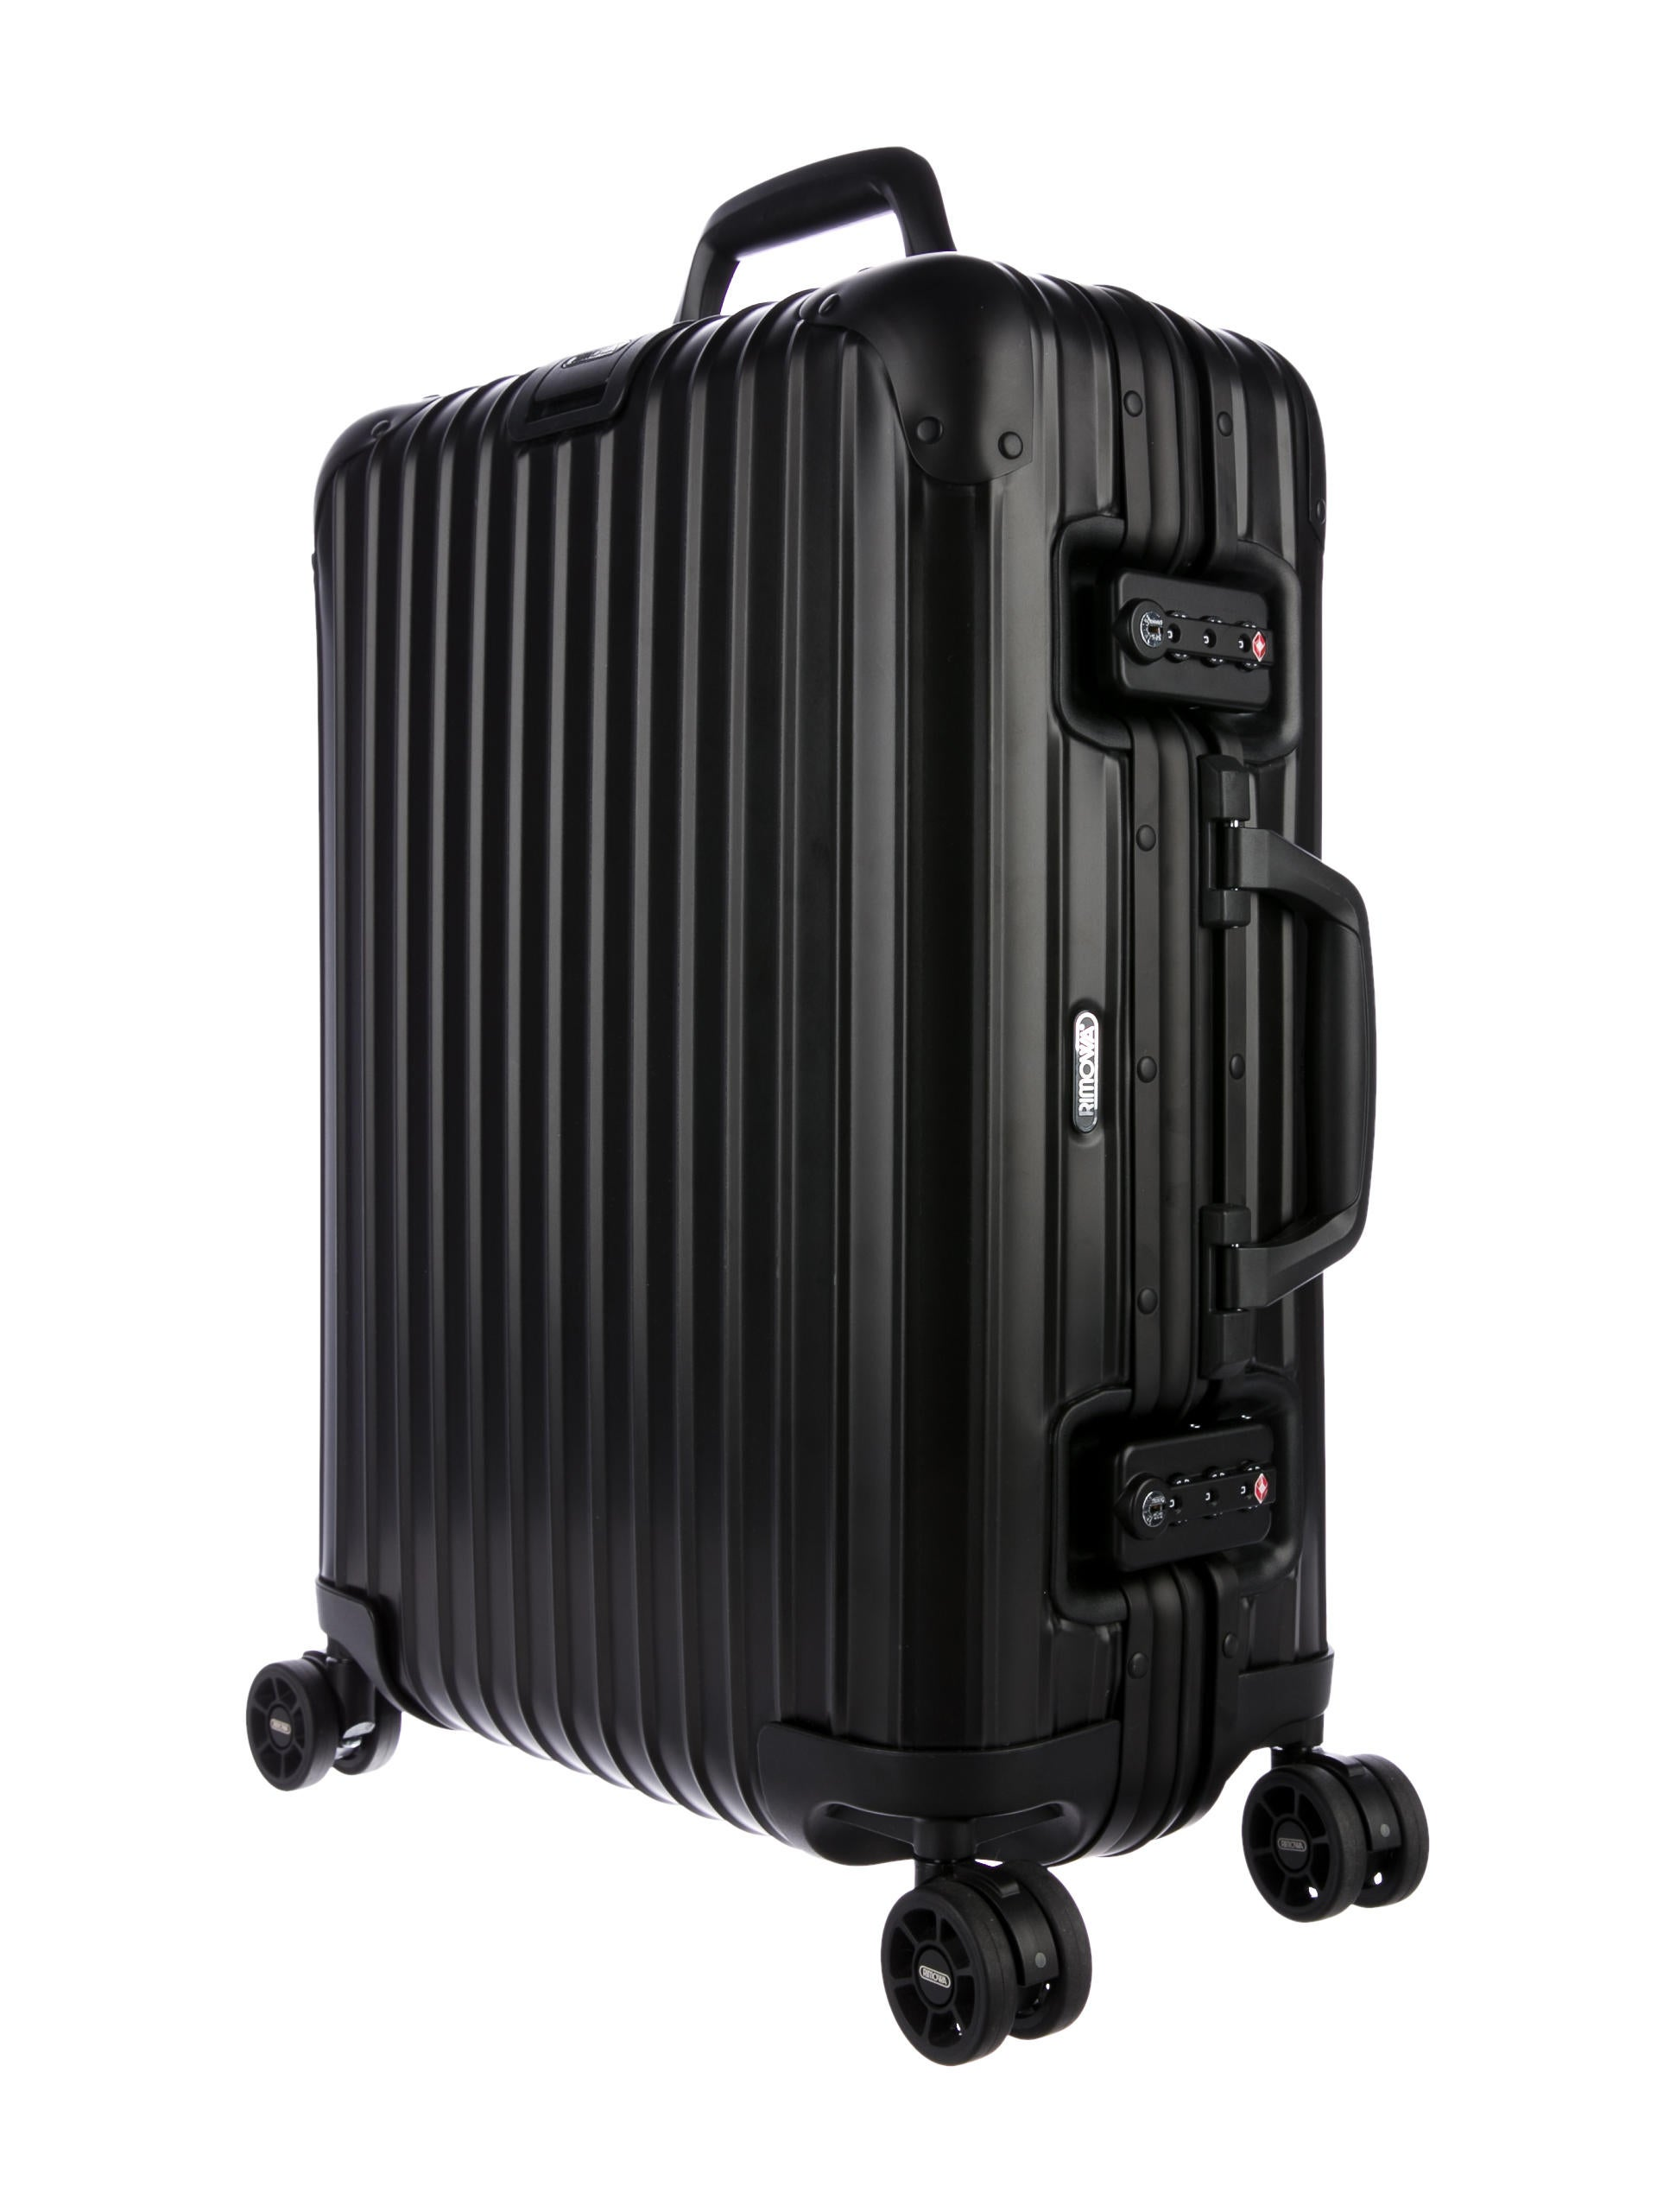 rimowa salsa cabin multiwheel 32 0l luggage rwa20131 the realreal. Black Bedroom Furniture Sets. Home Design Ideas